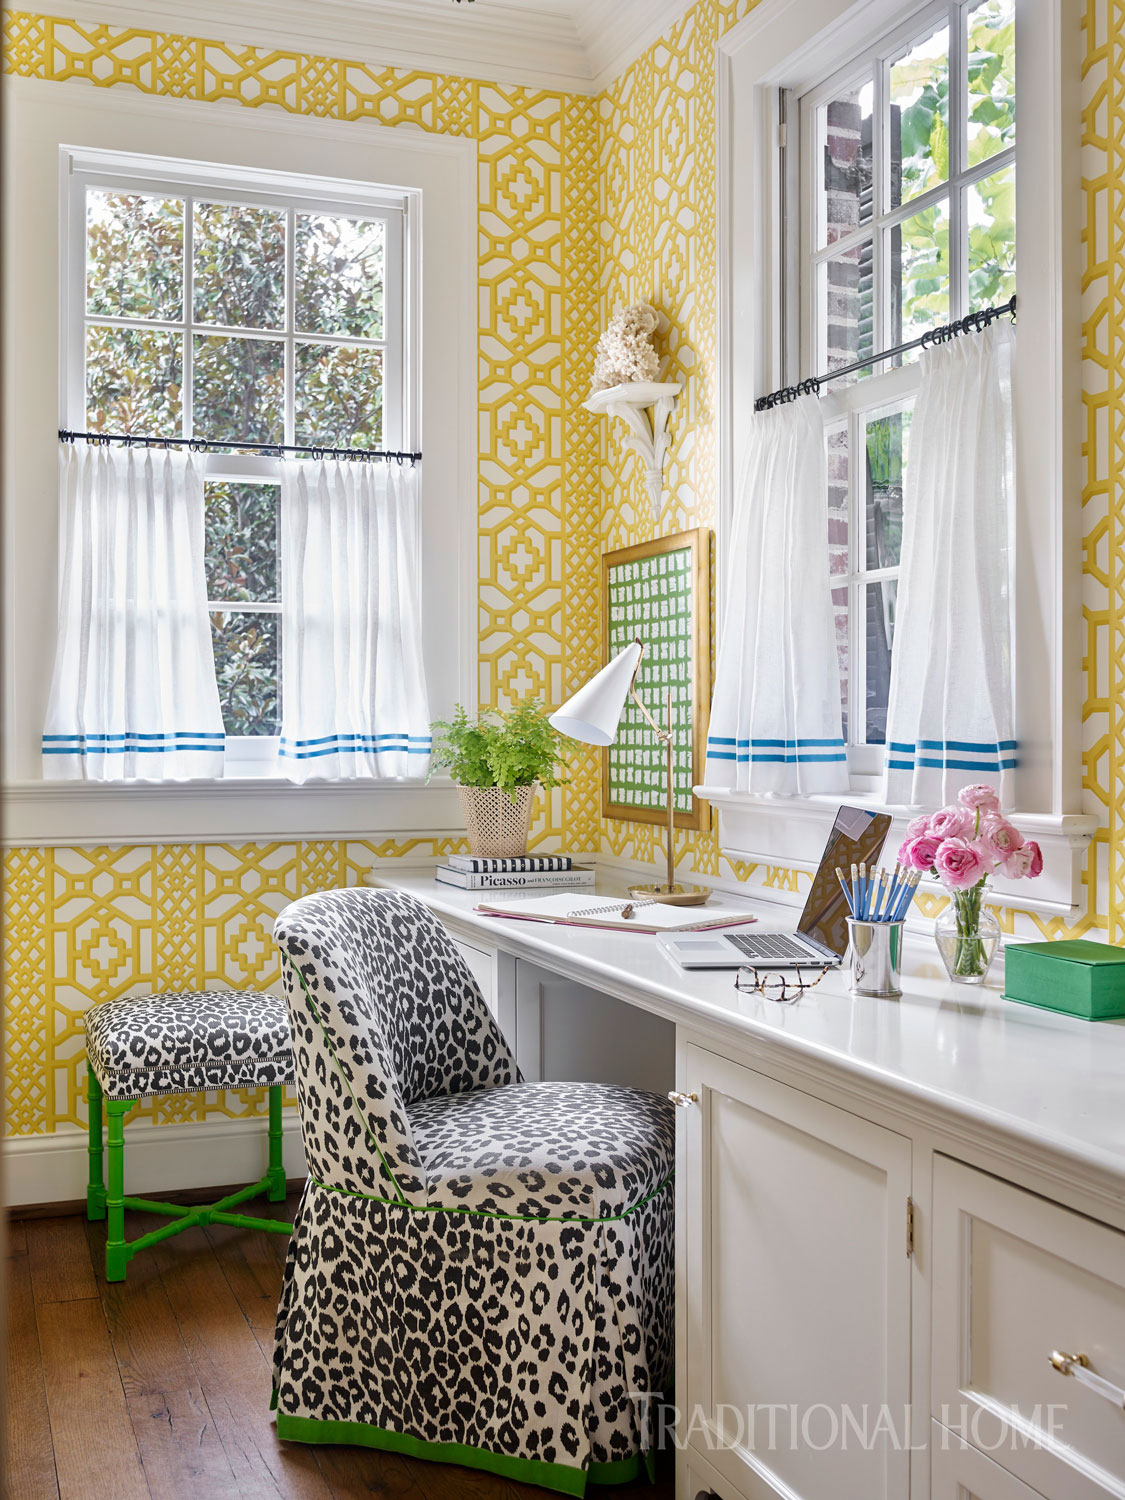 Yellow wallpaper wraps this work space in cheer. Black-and-white cheetah print fabric is paired with green trim on a skirted chair and green legs on a coordinating stool.